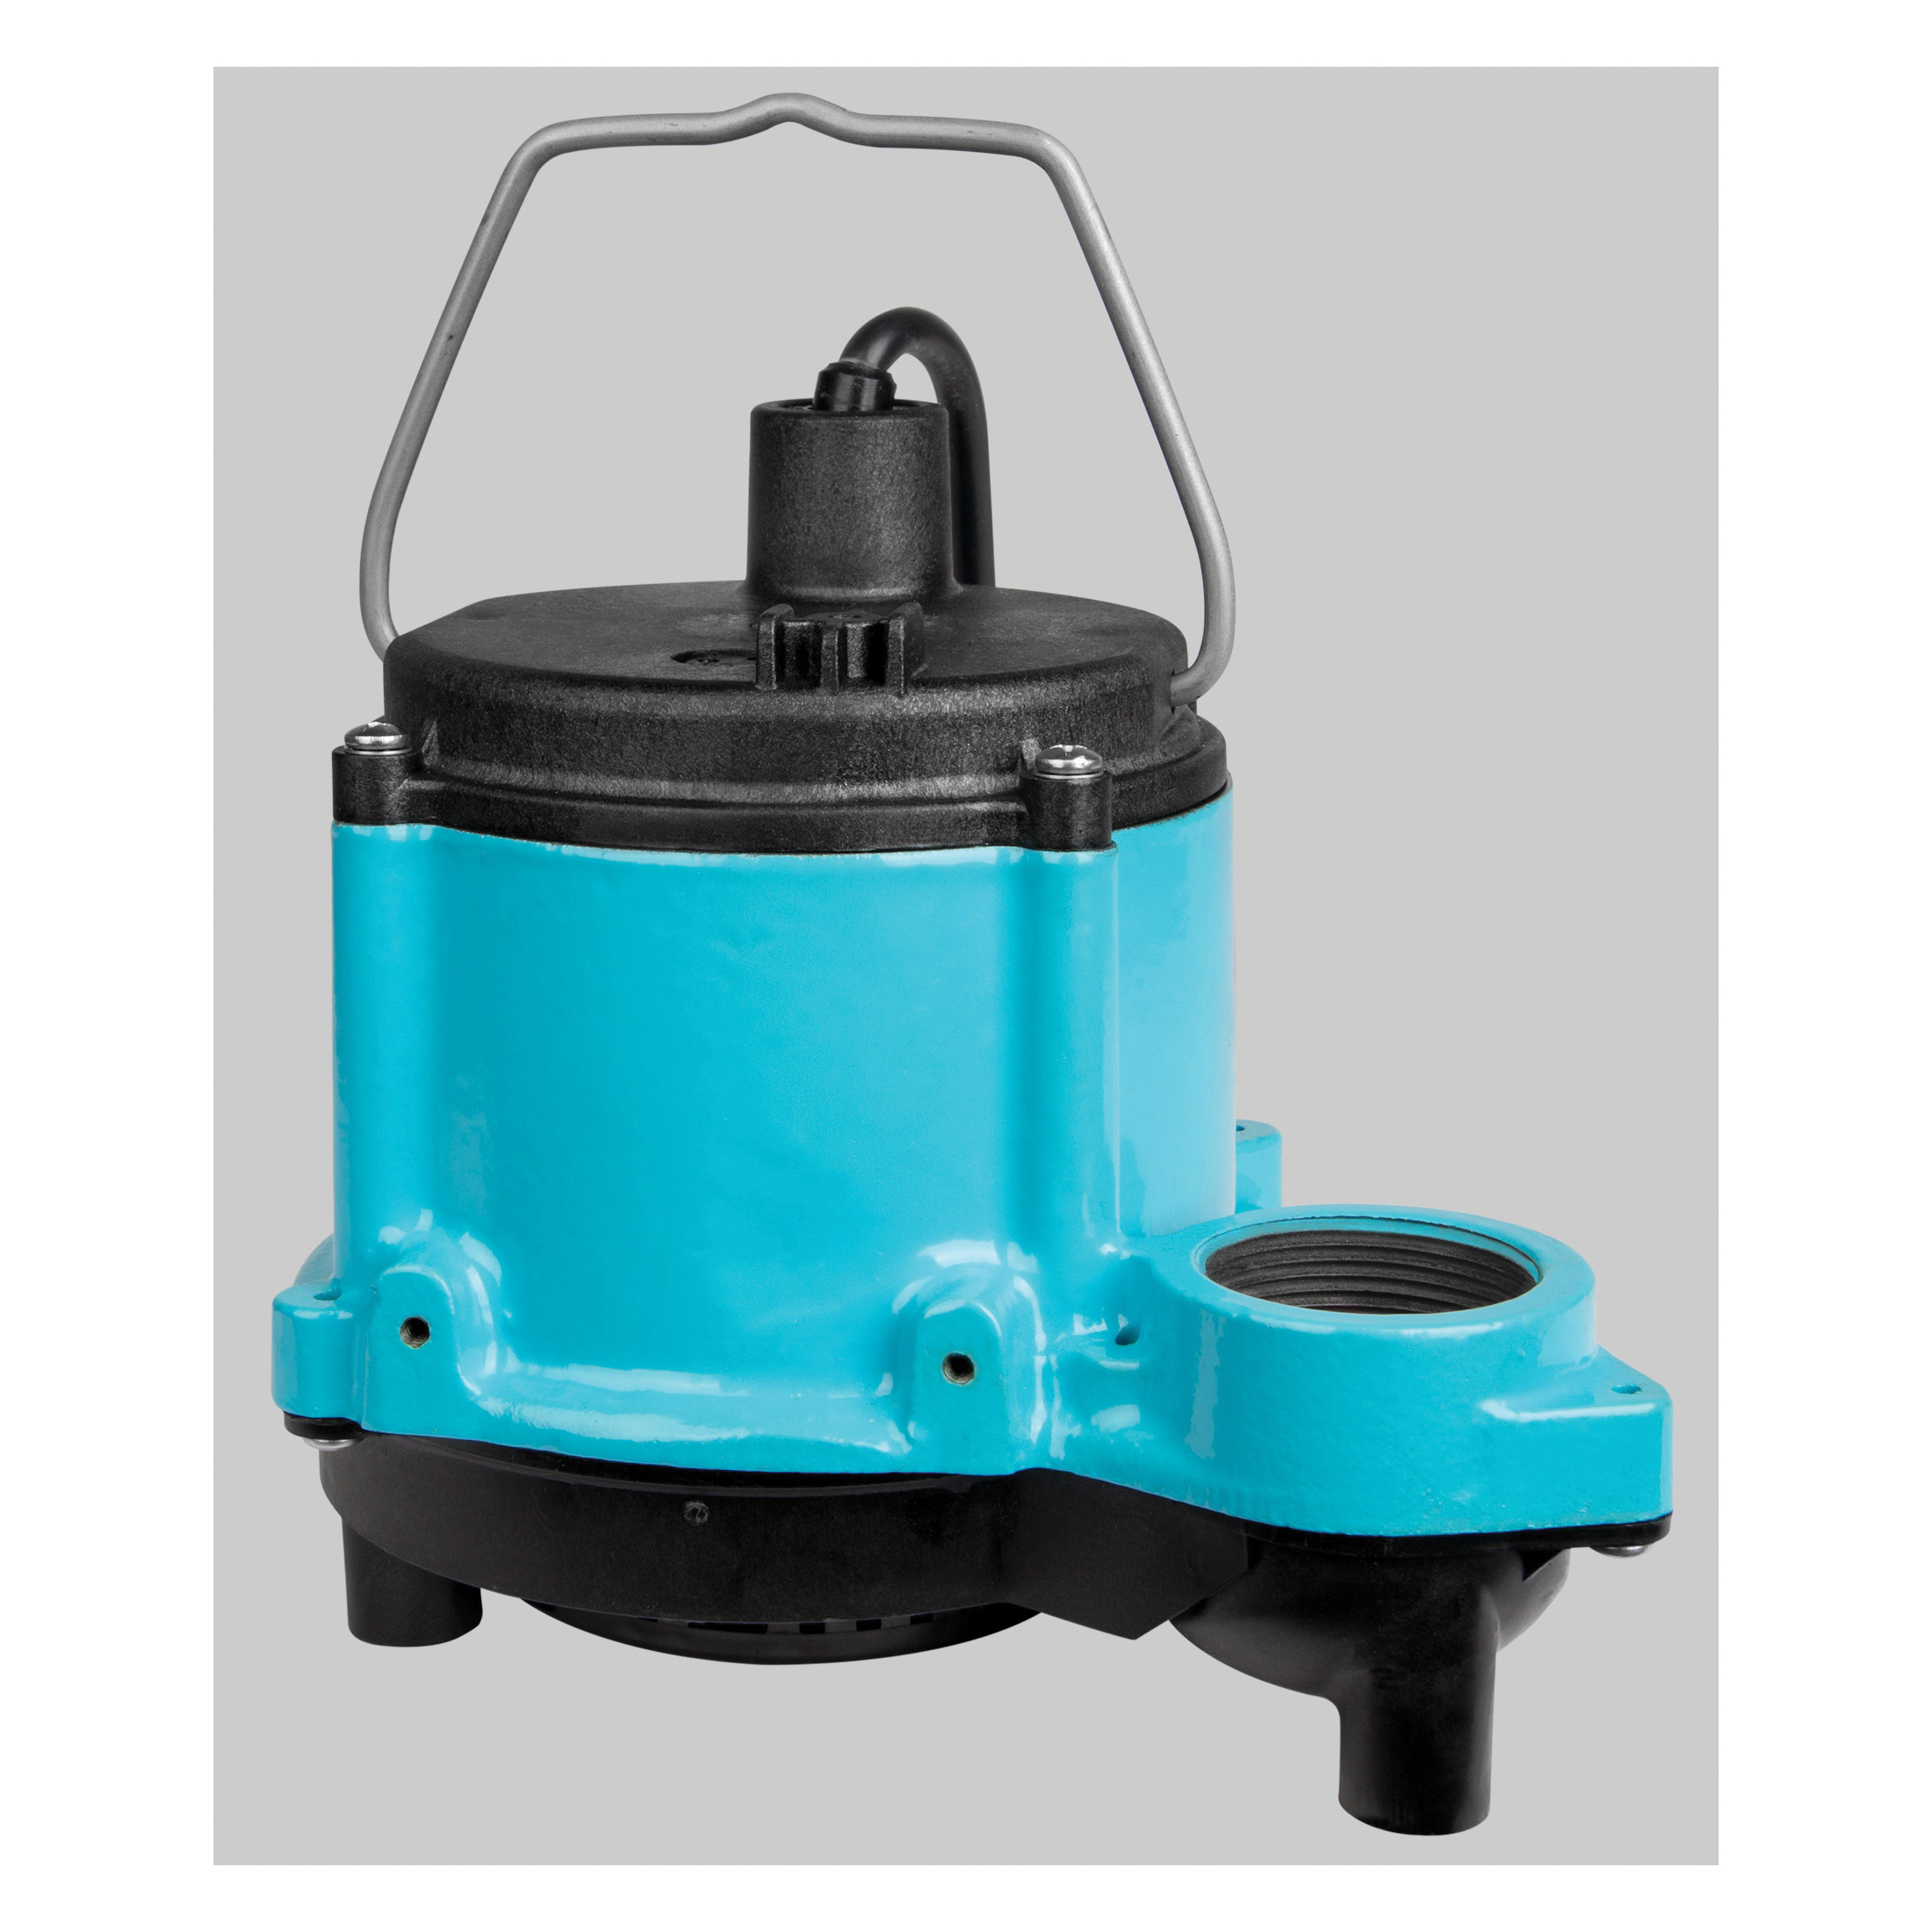 Little Giant® 506271 6 Series 1-Phase Submersible Sump Pump, 46 gpm Flow Rate, 1-1/2 in FNPT Outlet, 1/3 hp, Import